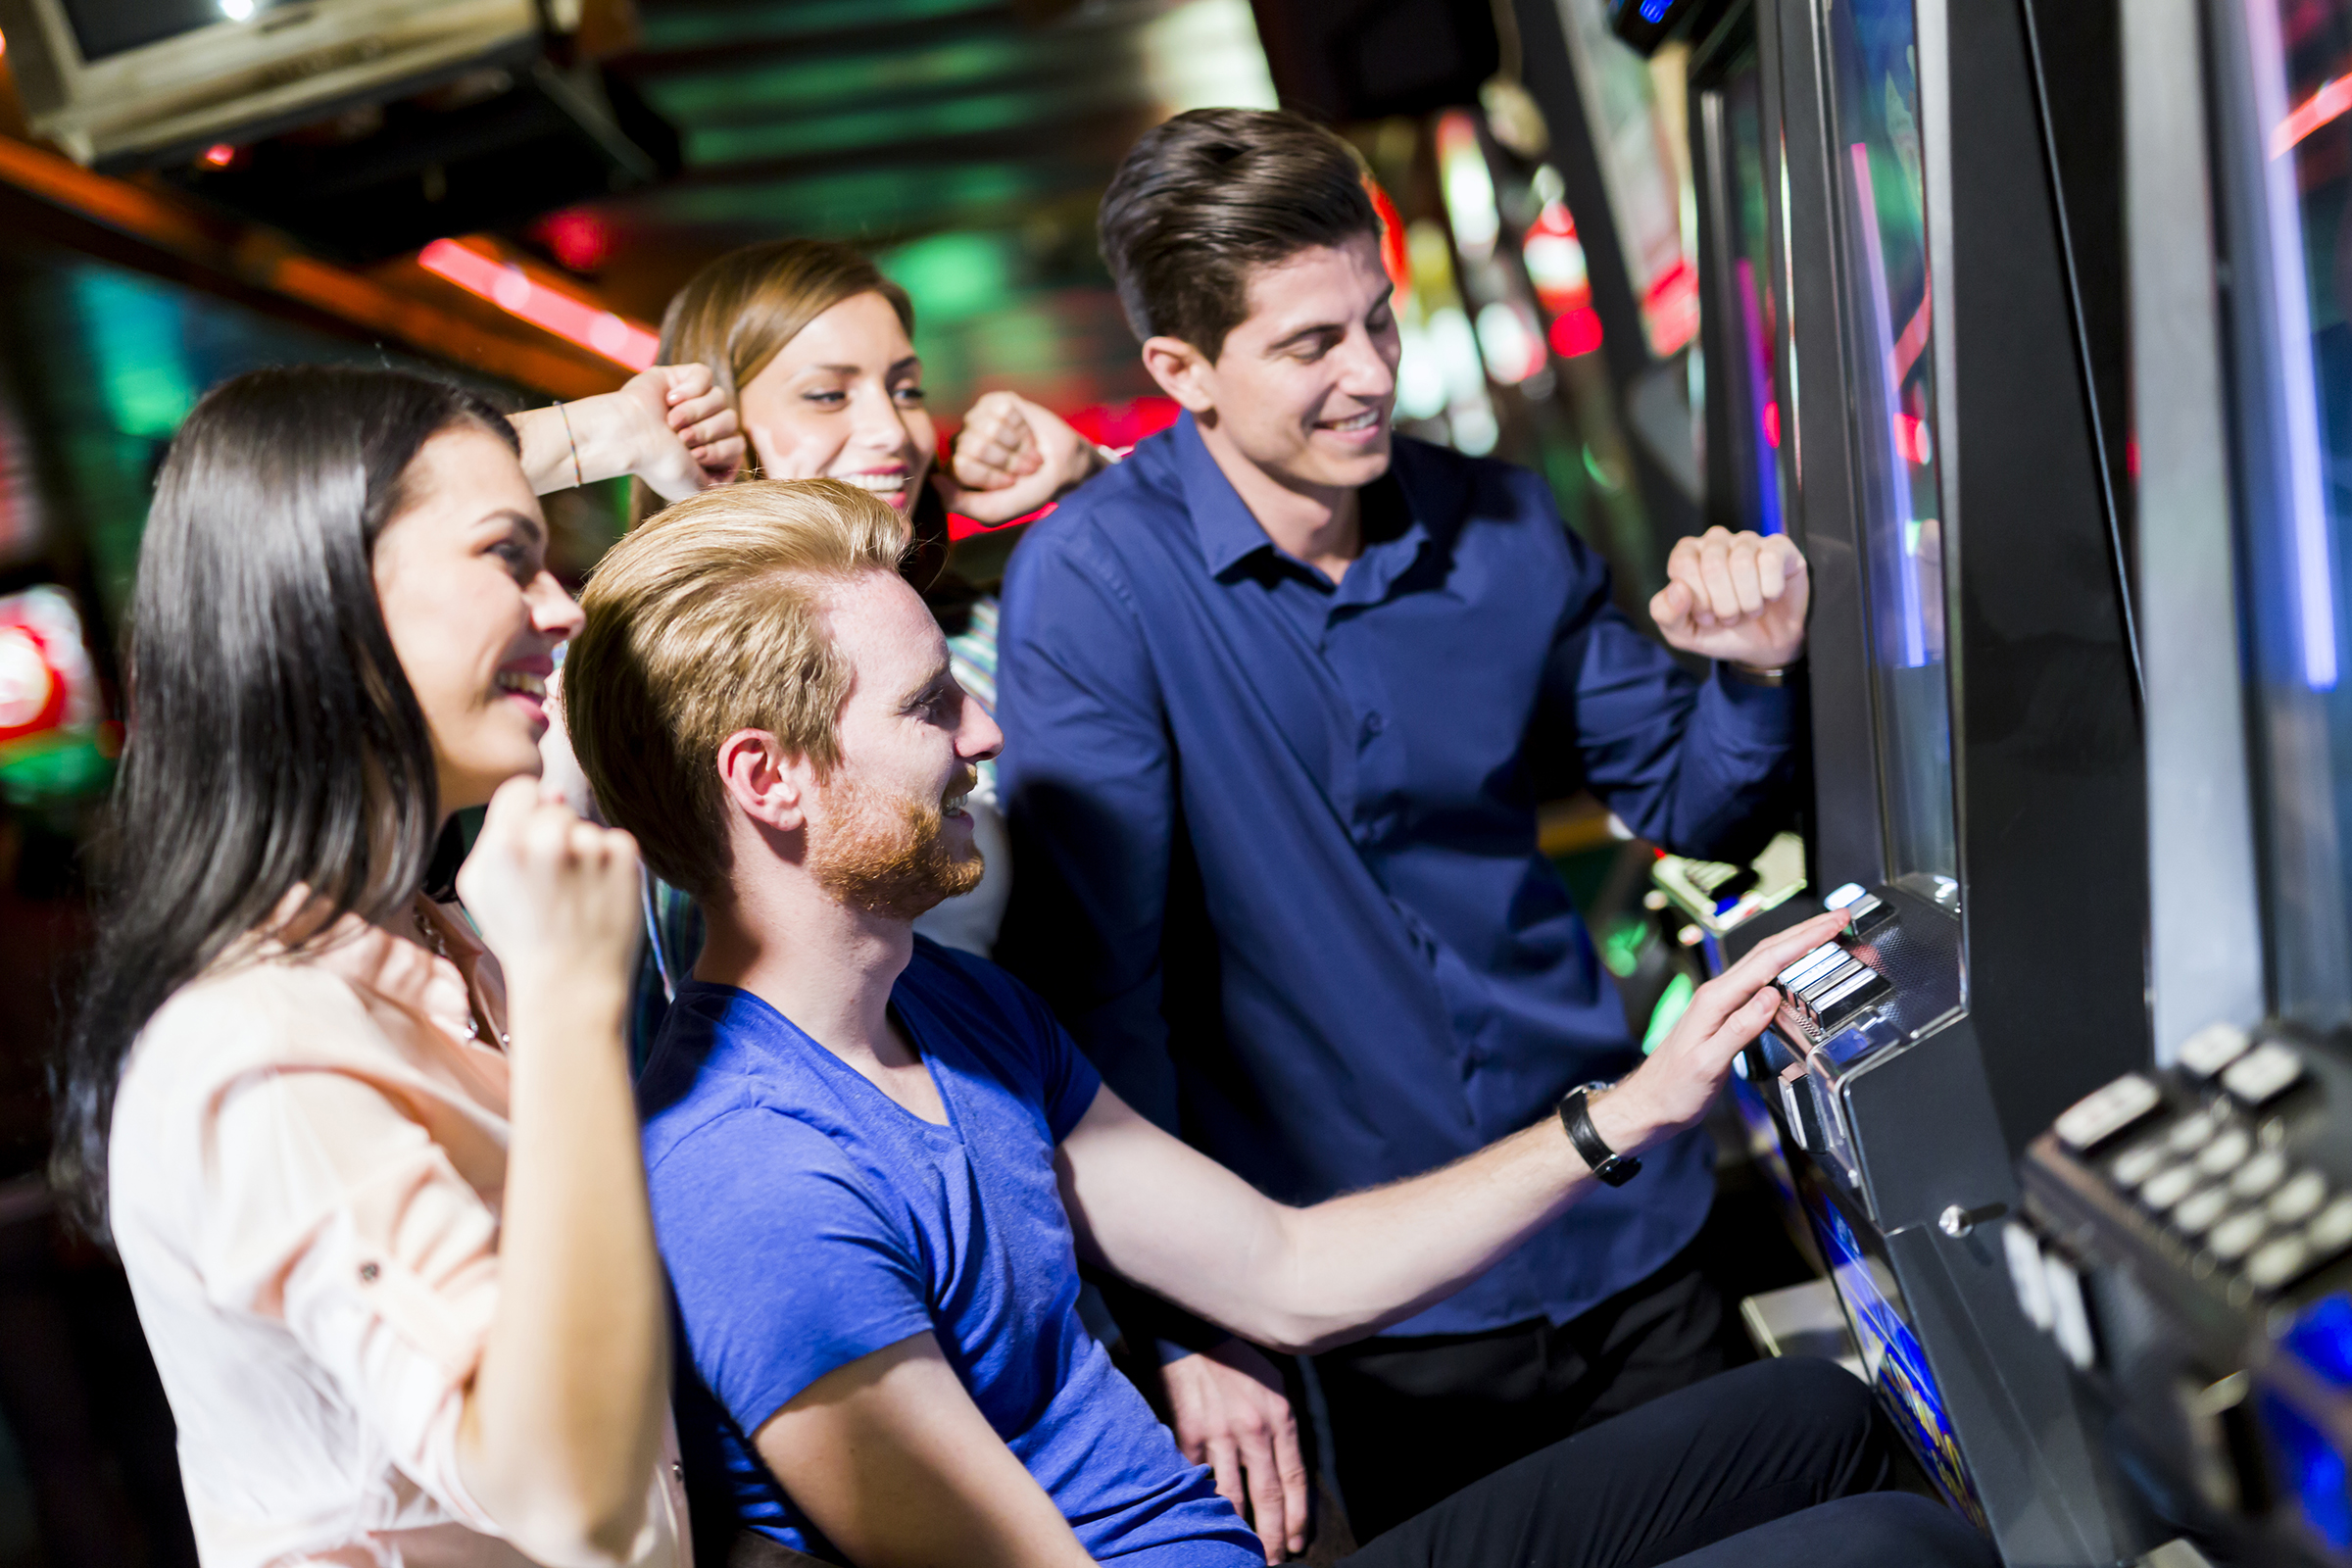 Young group of people gambling in a casino playing slot and various machines